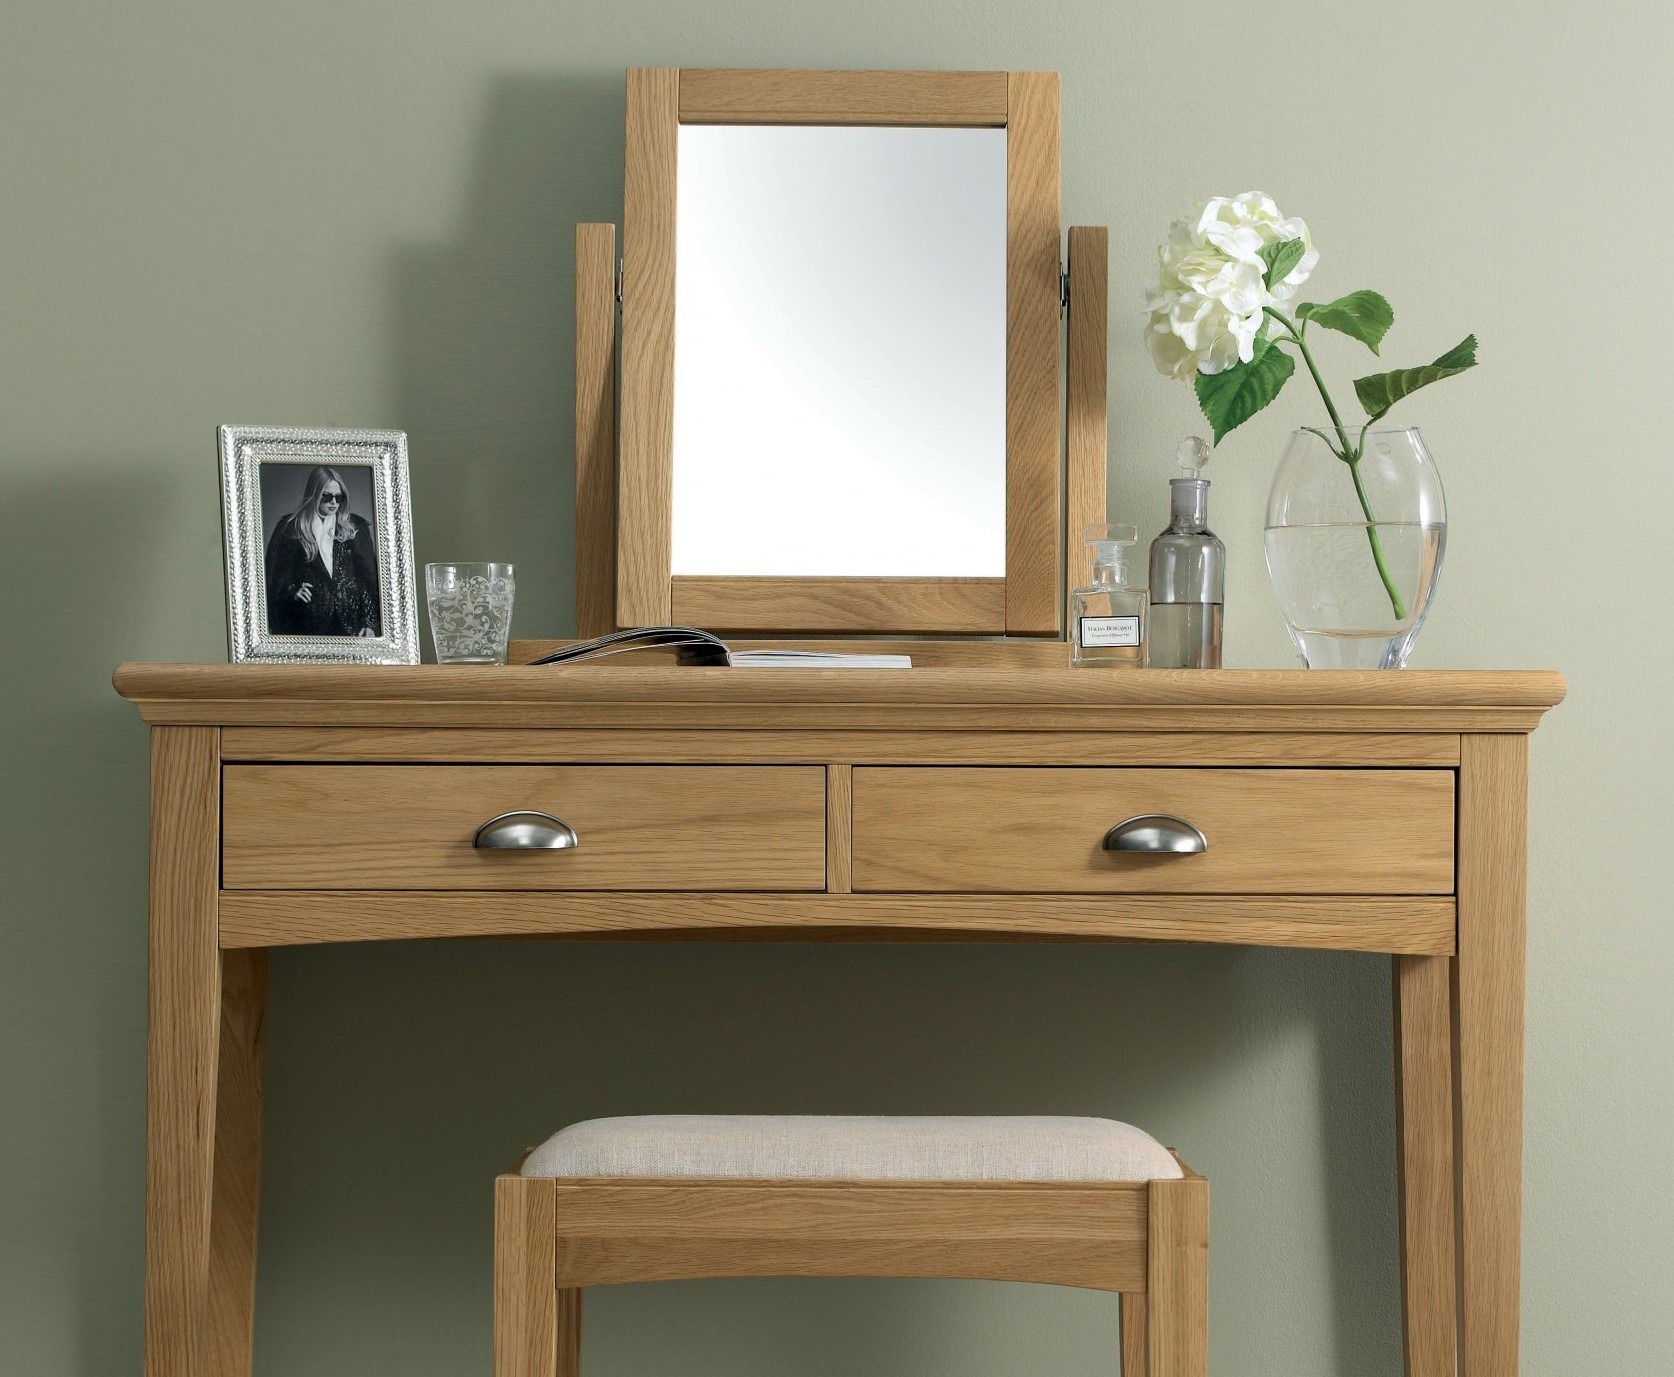 KYRA OAK BEDROOM MIRROR - L54cm x D18cm x H 52cm